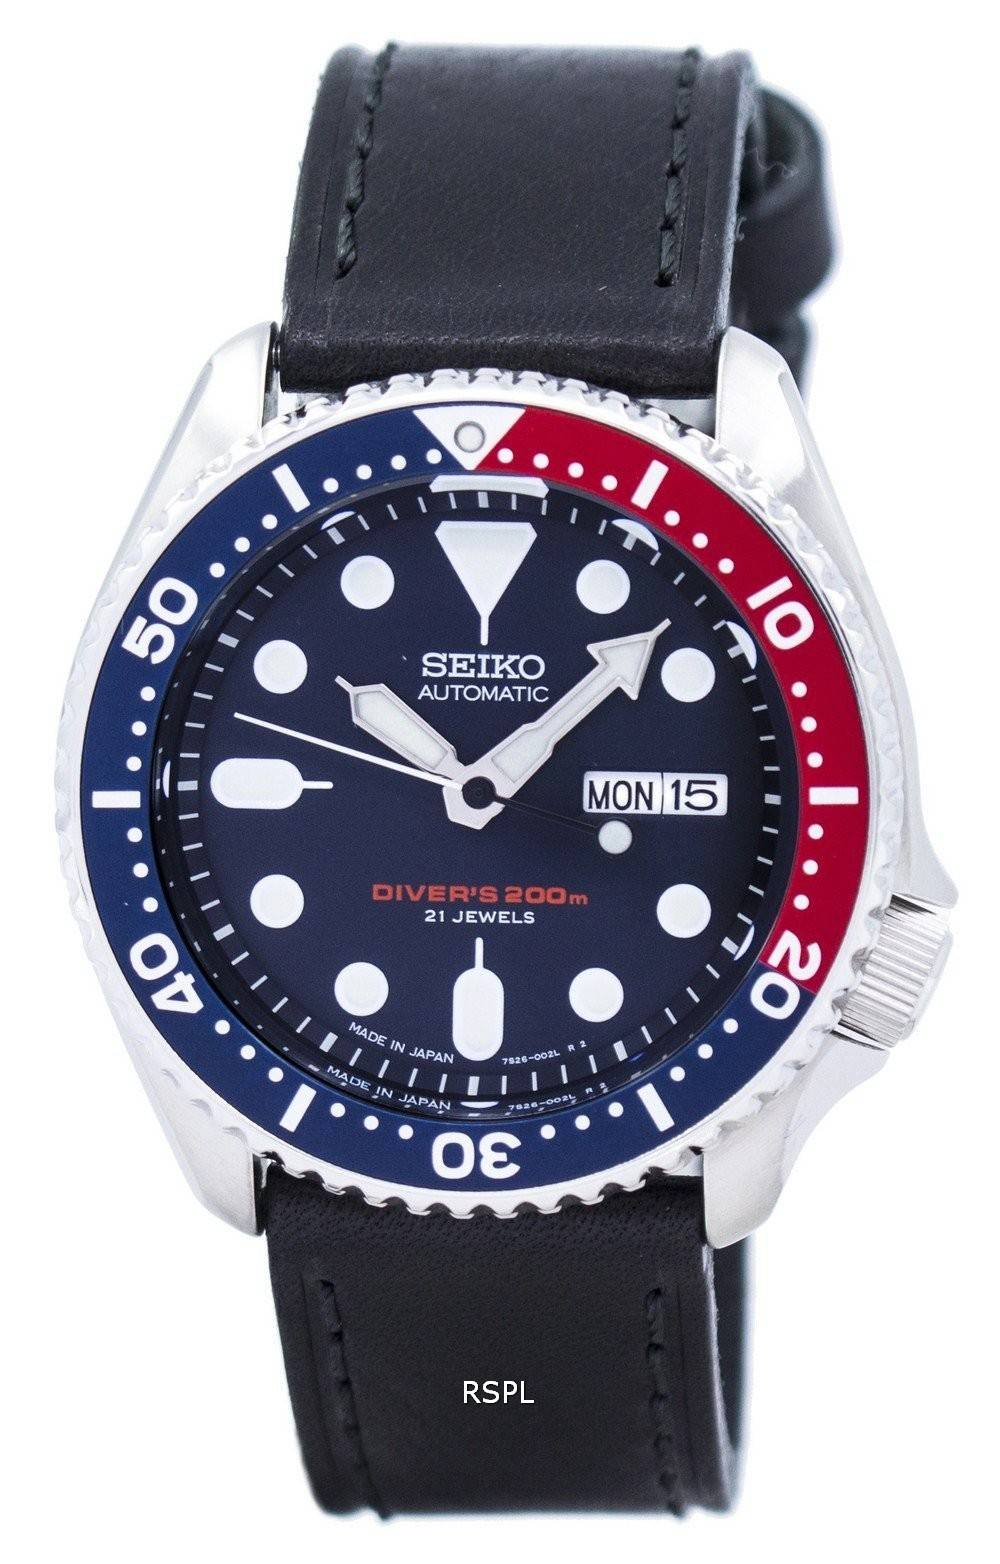 watch ratio en cuir noir skx009j1 ls8 200m hommes seiko. Black Bedroom Furniture Sets. Home Design Ideas